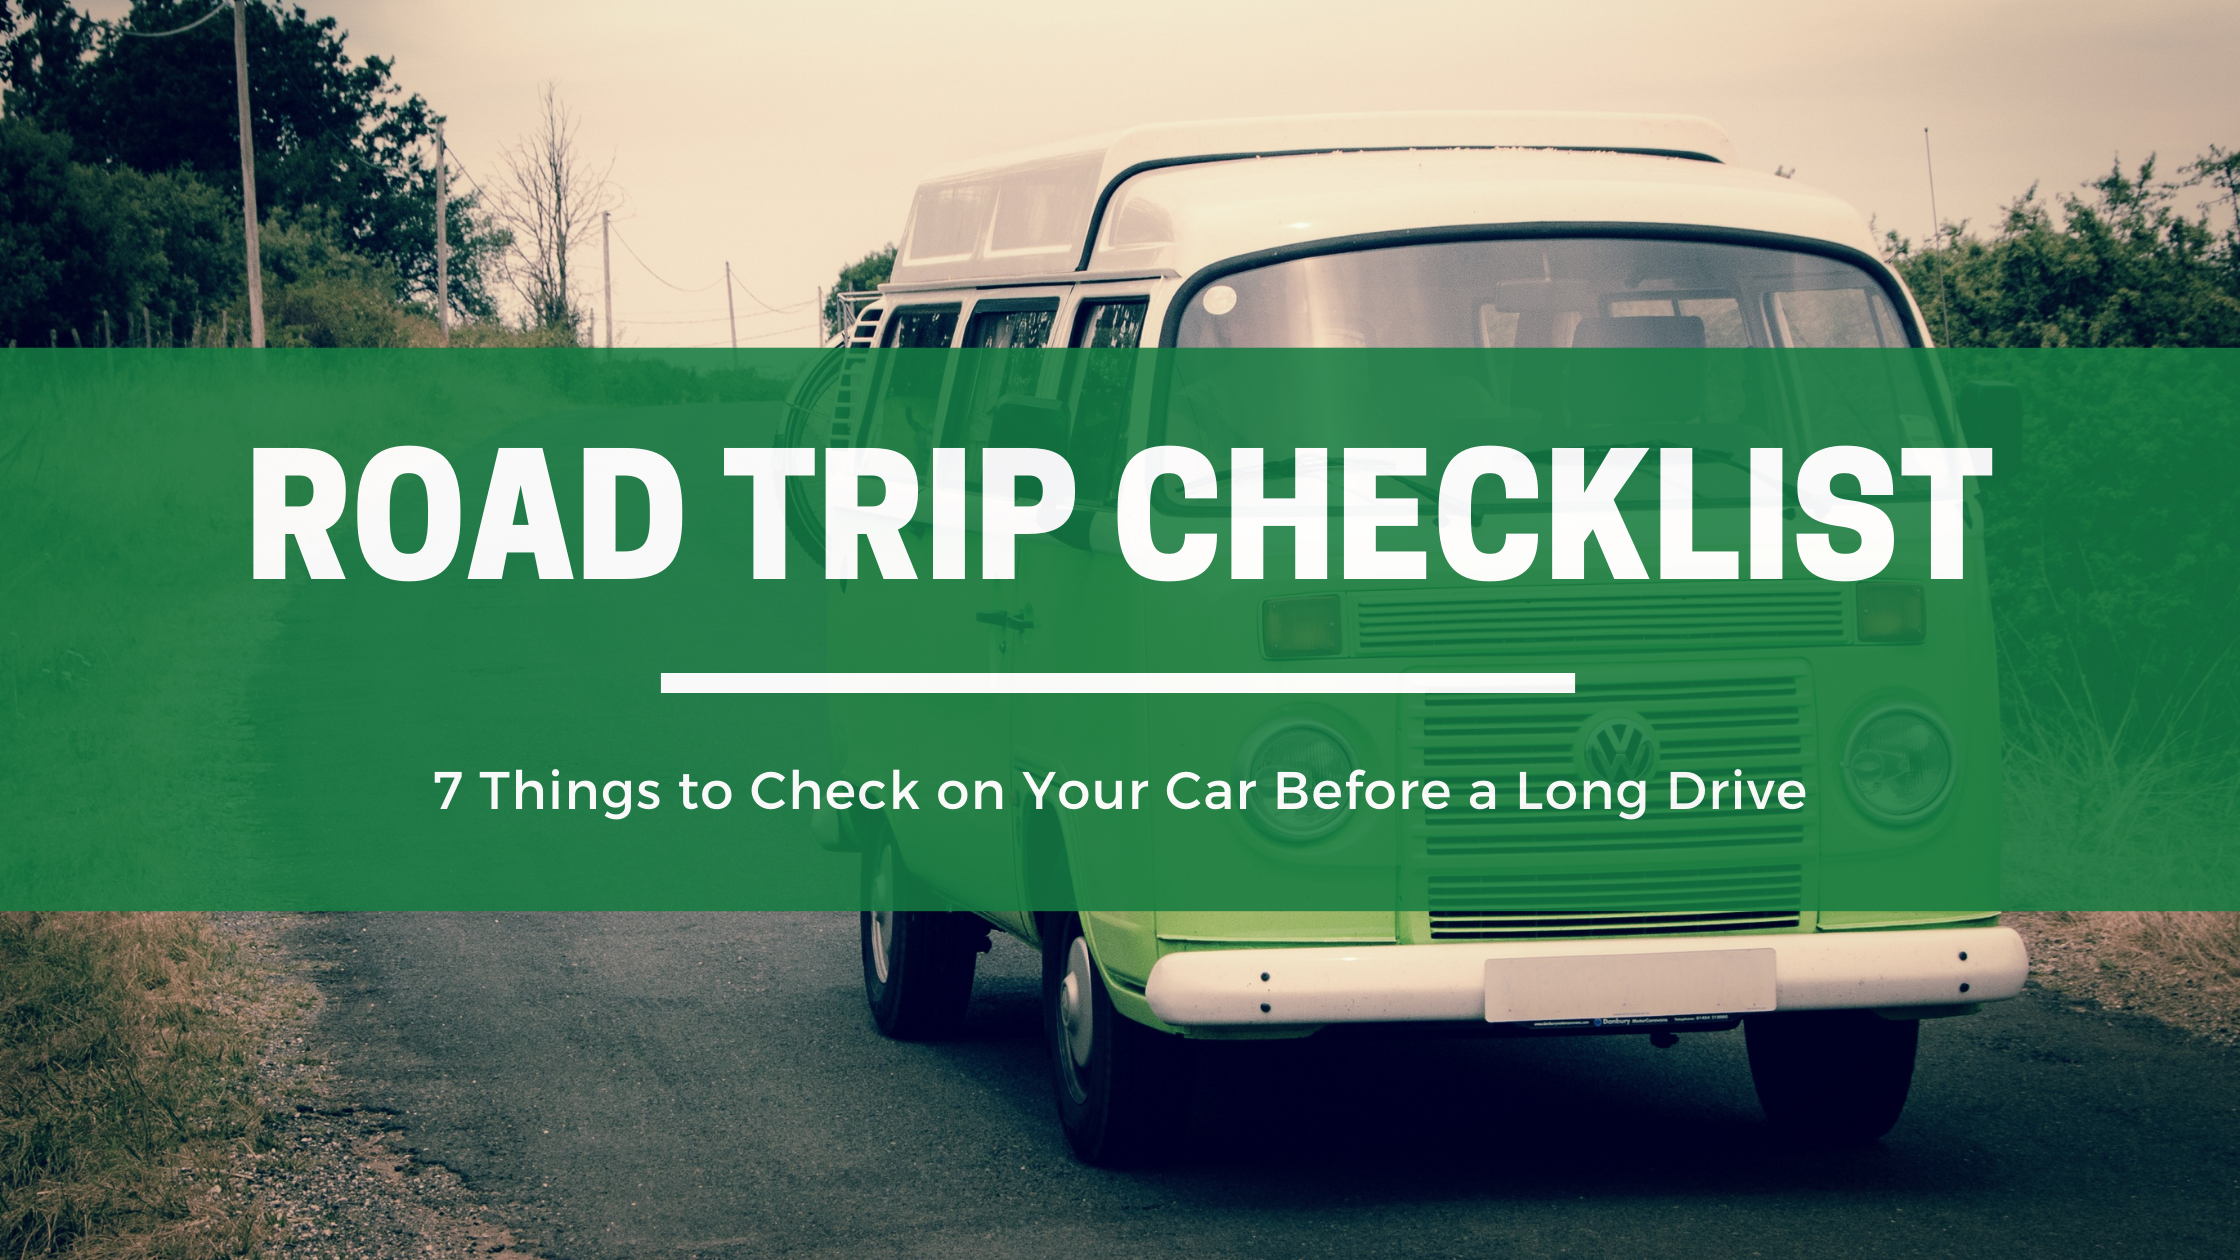 road trip checklist graphics